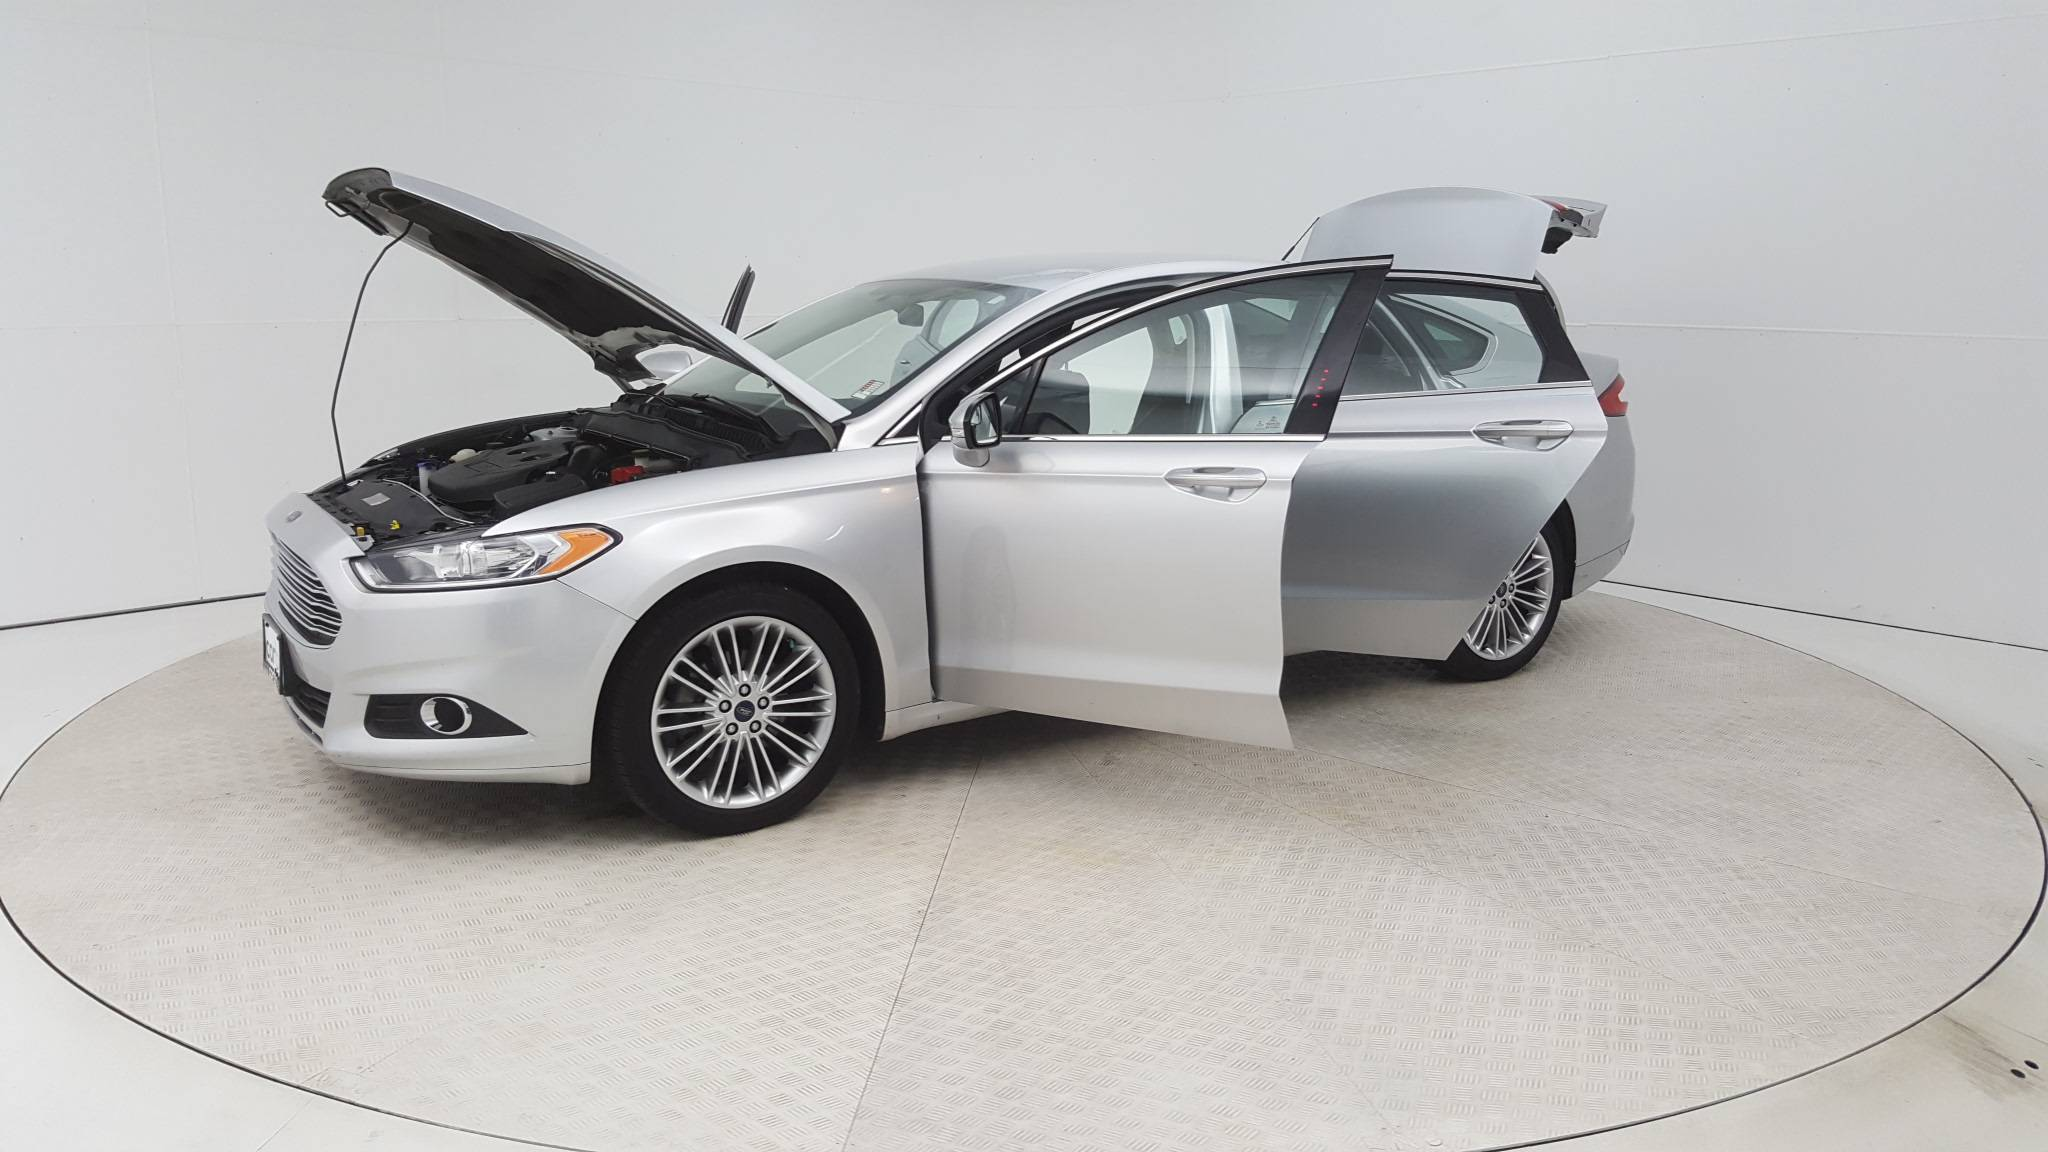 Pre Owned 2014 Ford Fusion 4dr Sdn SE FWD 4dr Car in Baltimore